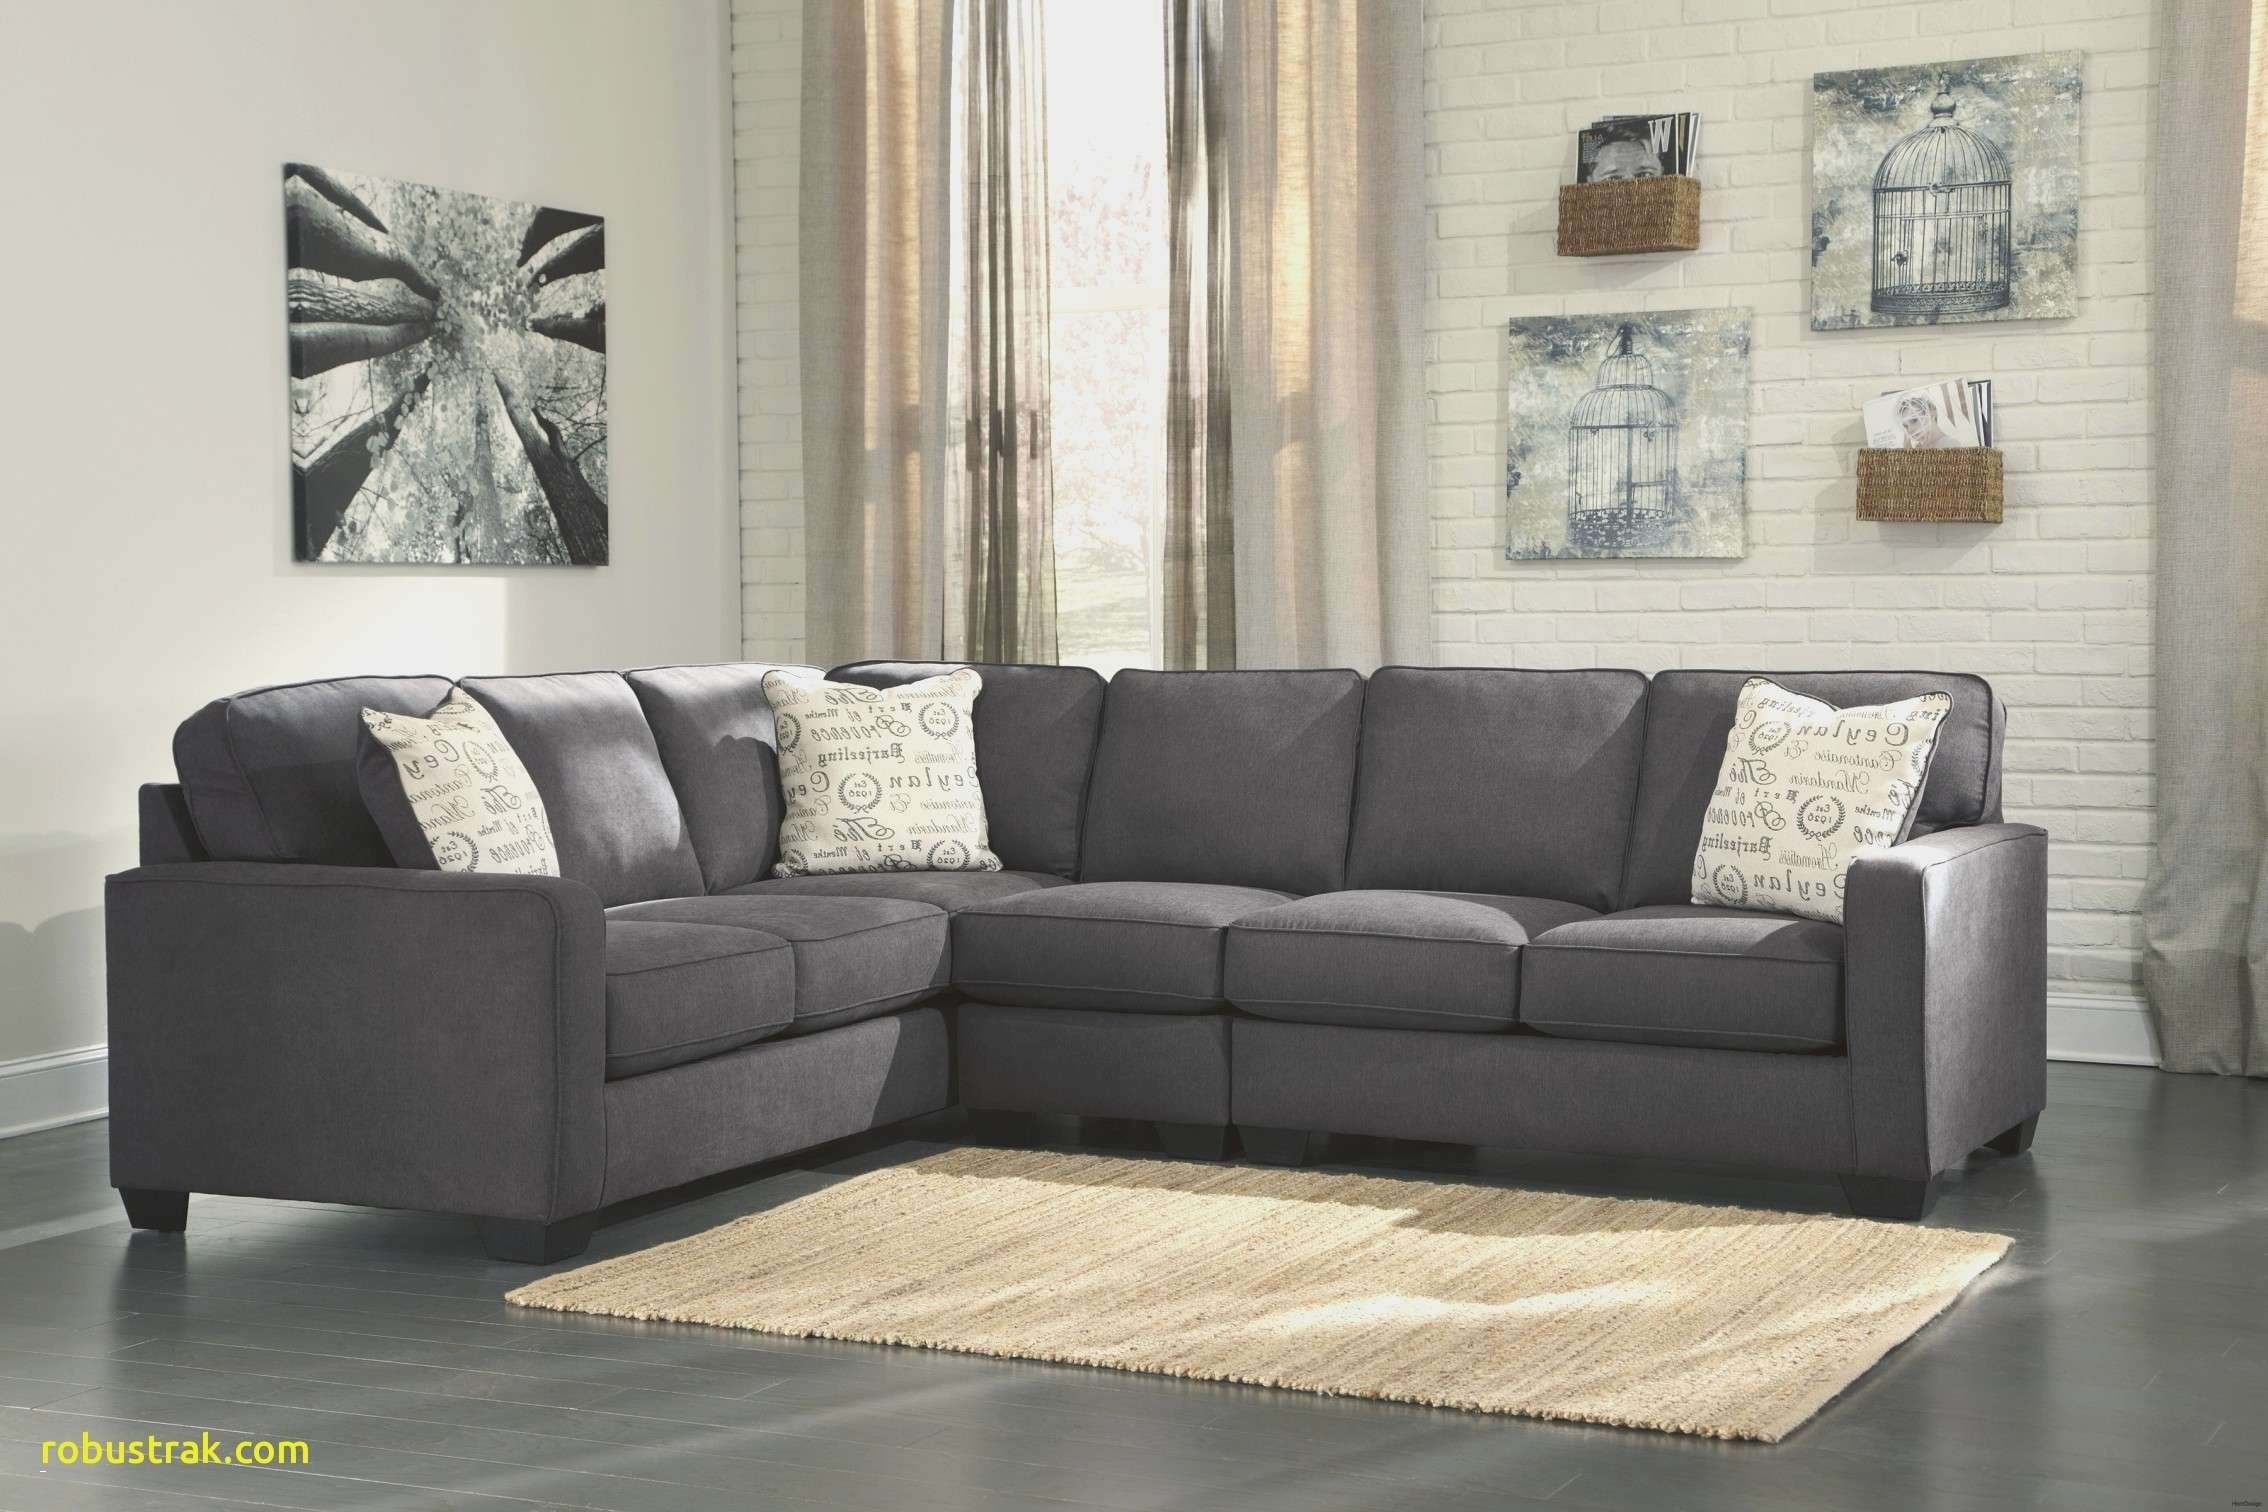 25 New Light Grey Sofa Pictures   Everythingalyce With Regard To Aquarius Dark Grey 2 Piece Sectionals With Raf Chaise (Photo 22 of 30)